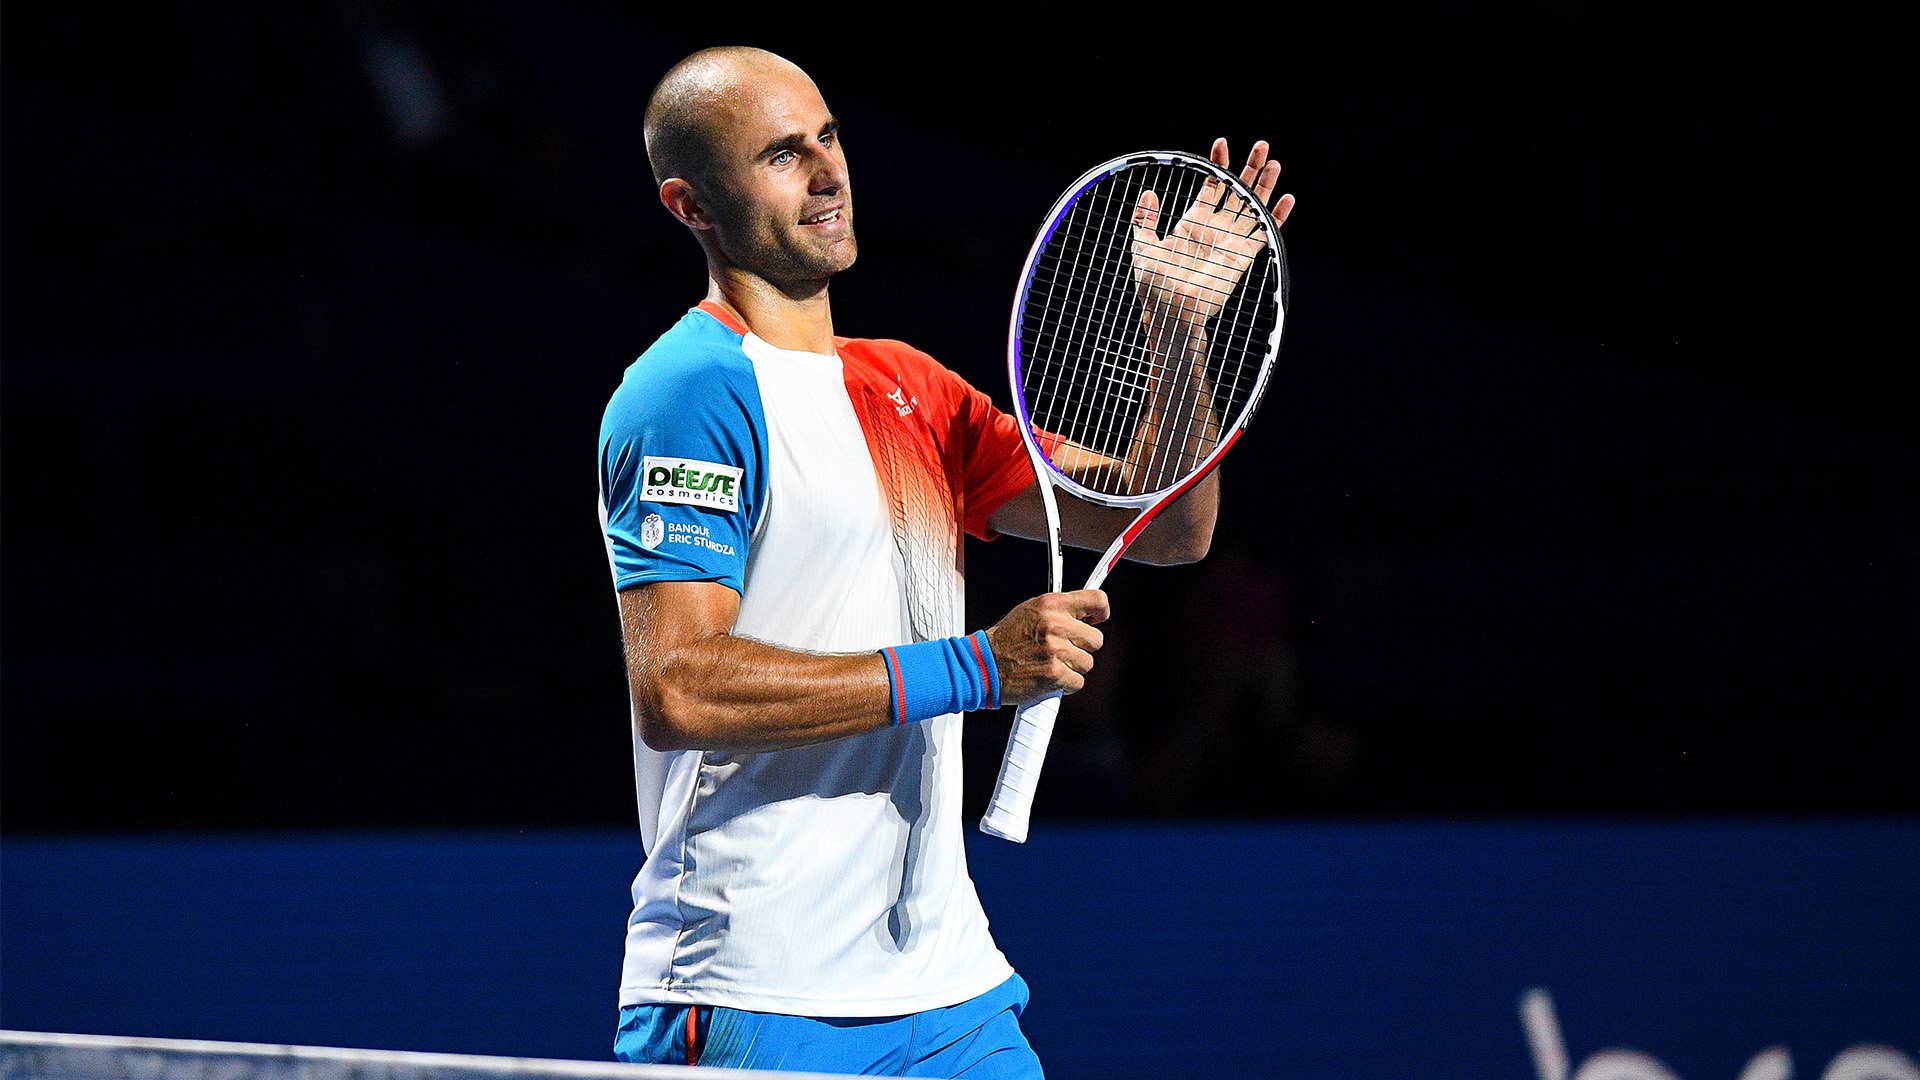 Marius Copil gets into the finals at Swiss Indoors